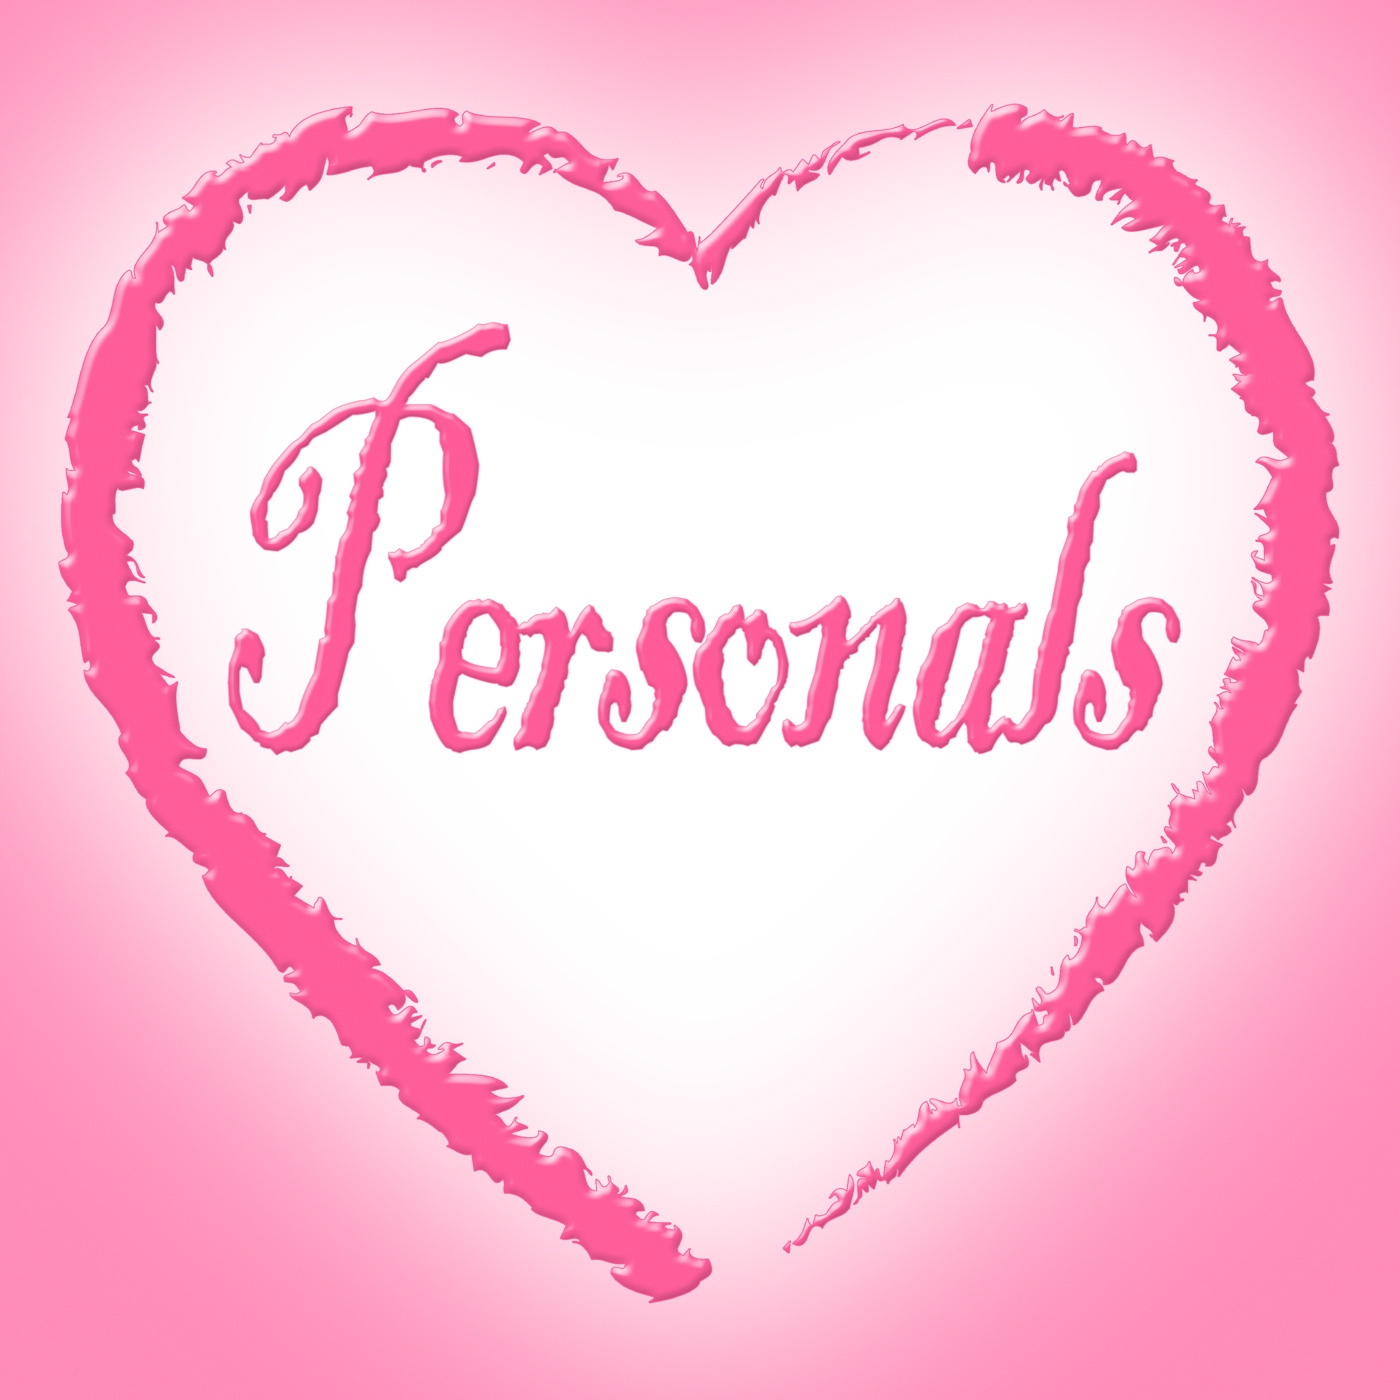 Personals heart means advertisement loneliness and romantic photo